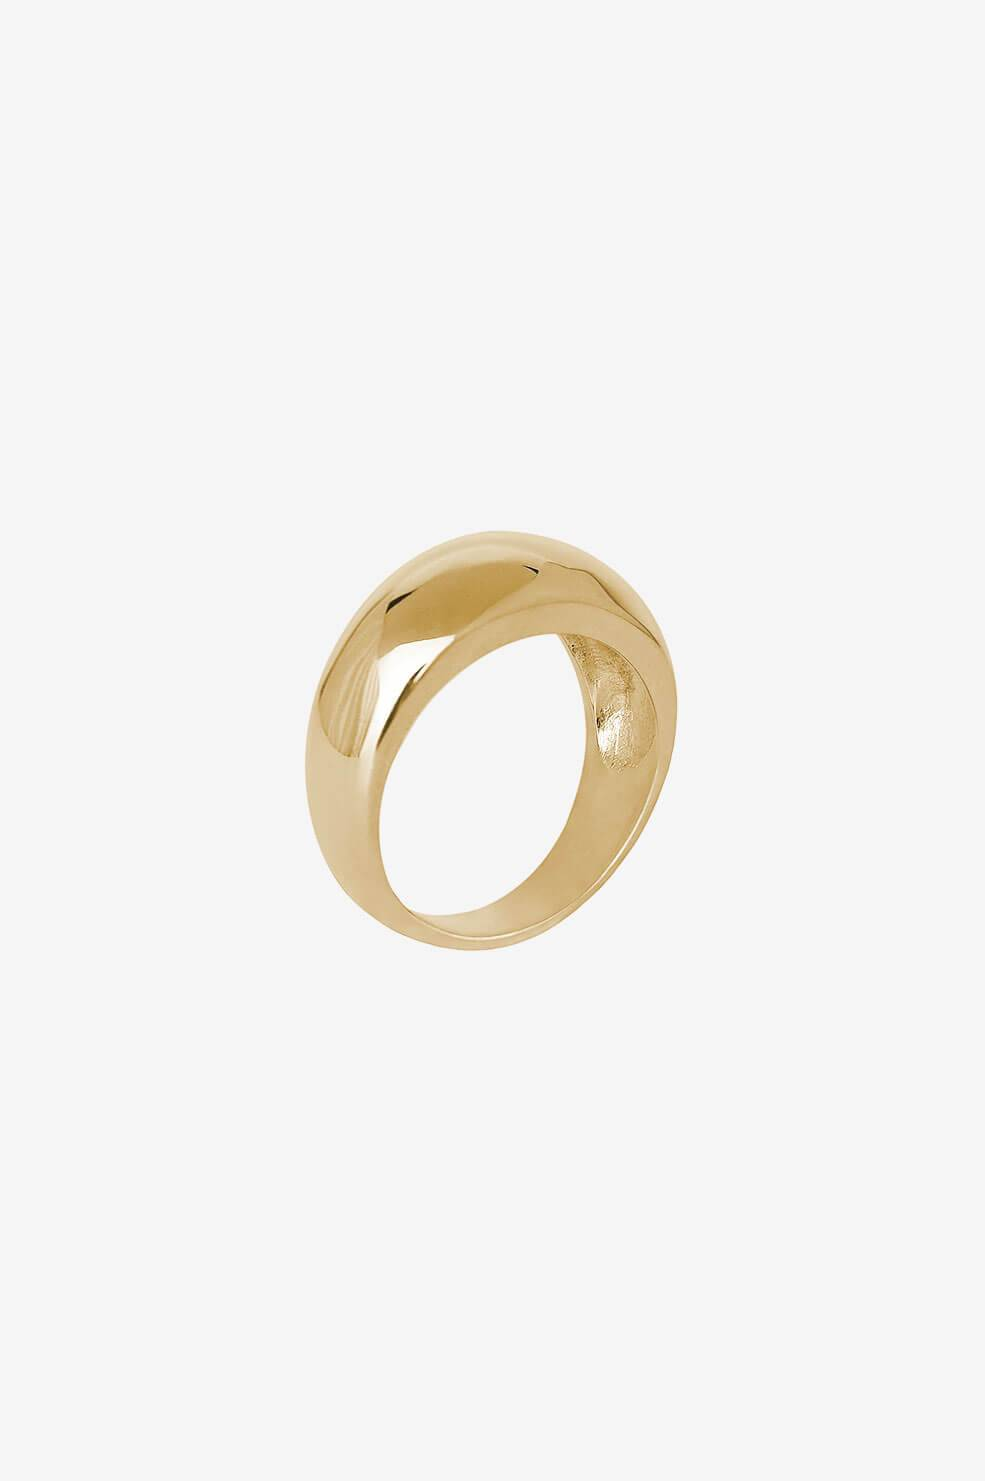 ANINE BING Dome Ring in Gold  - Gold - Size: 4